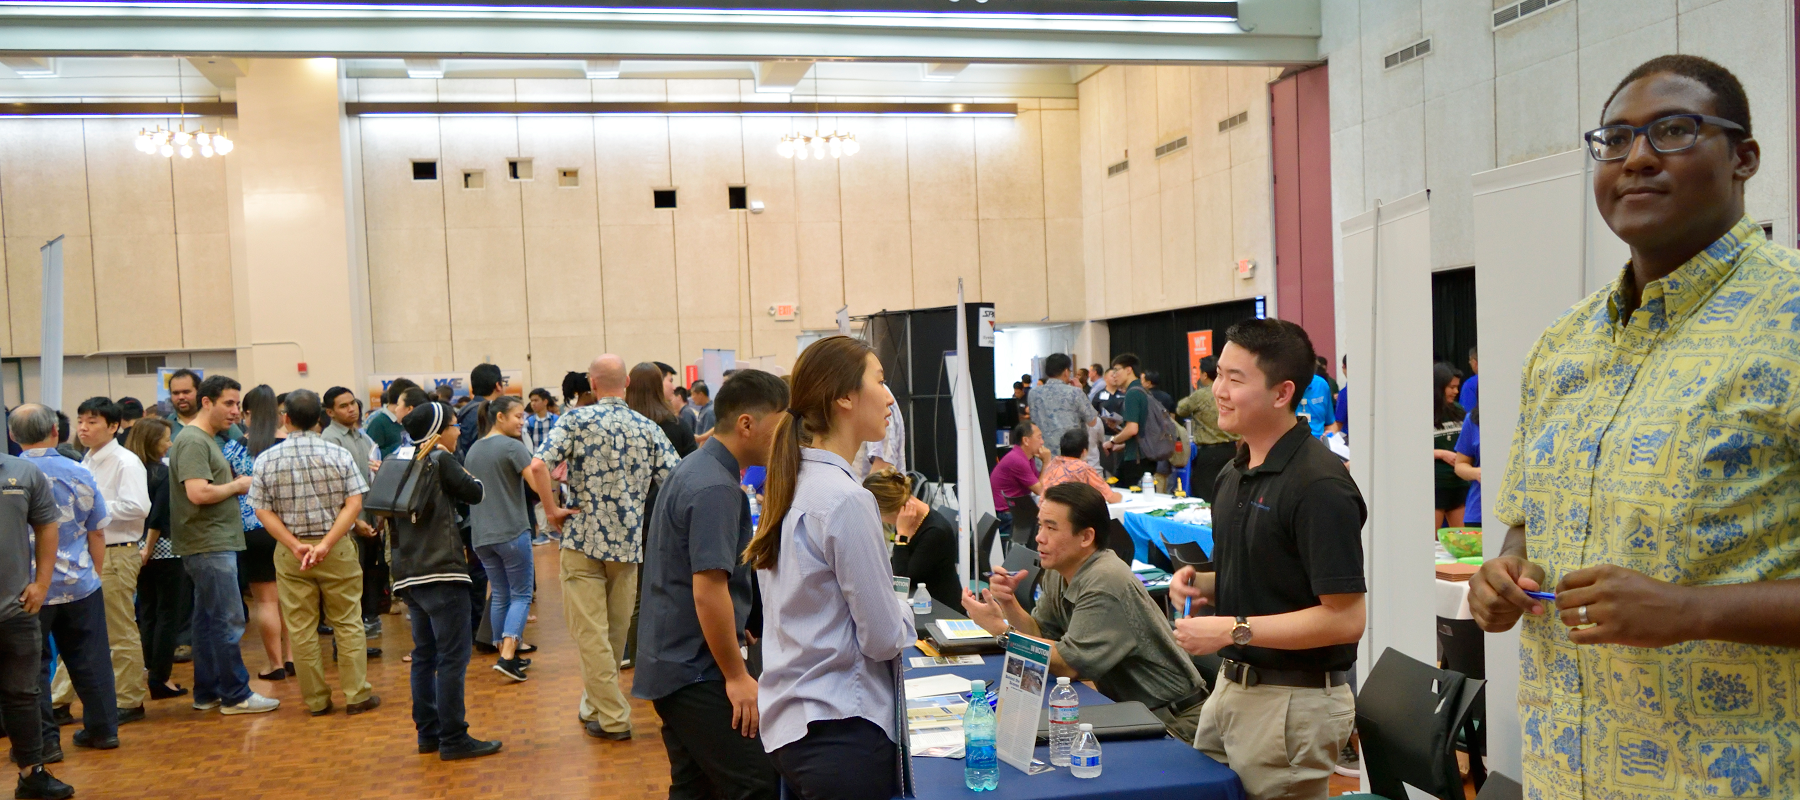 A Wide-shot Of Students And Employers Interacting At Career Day.